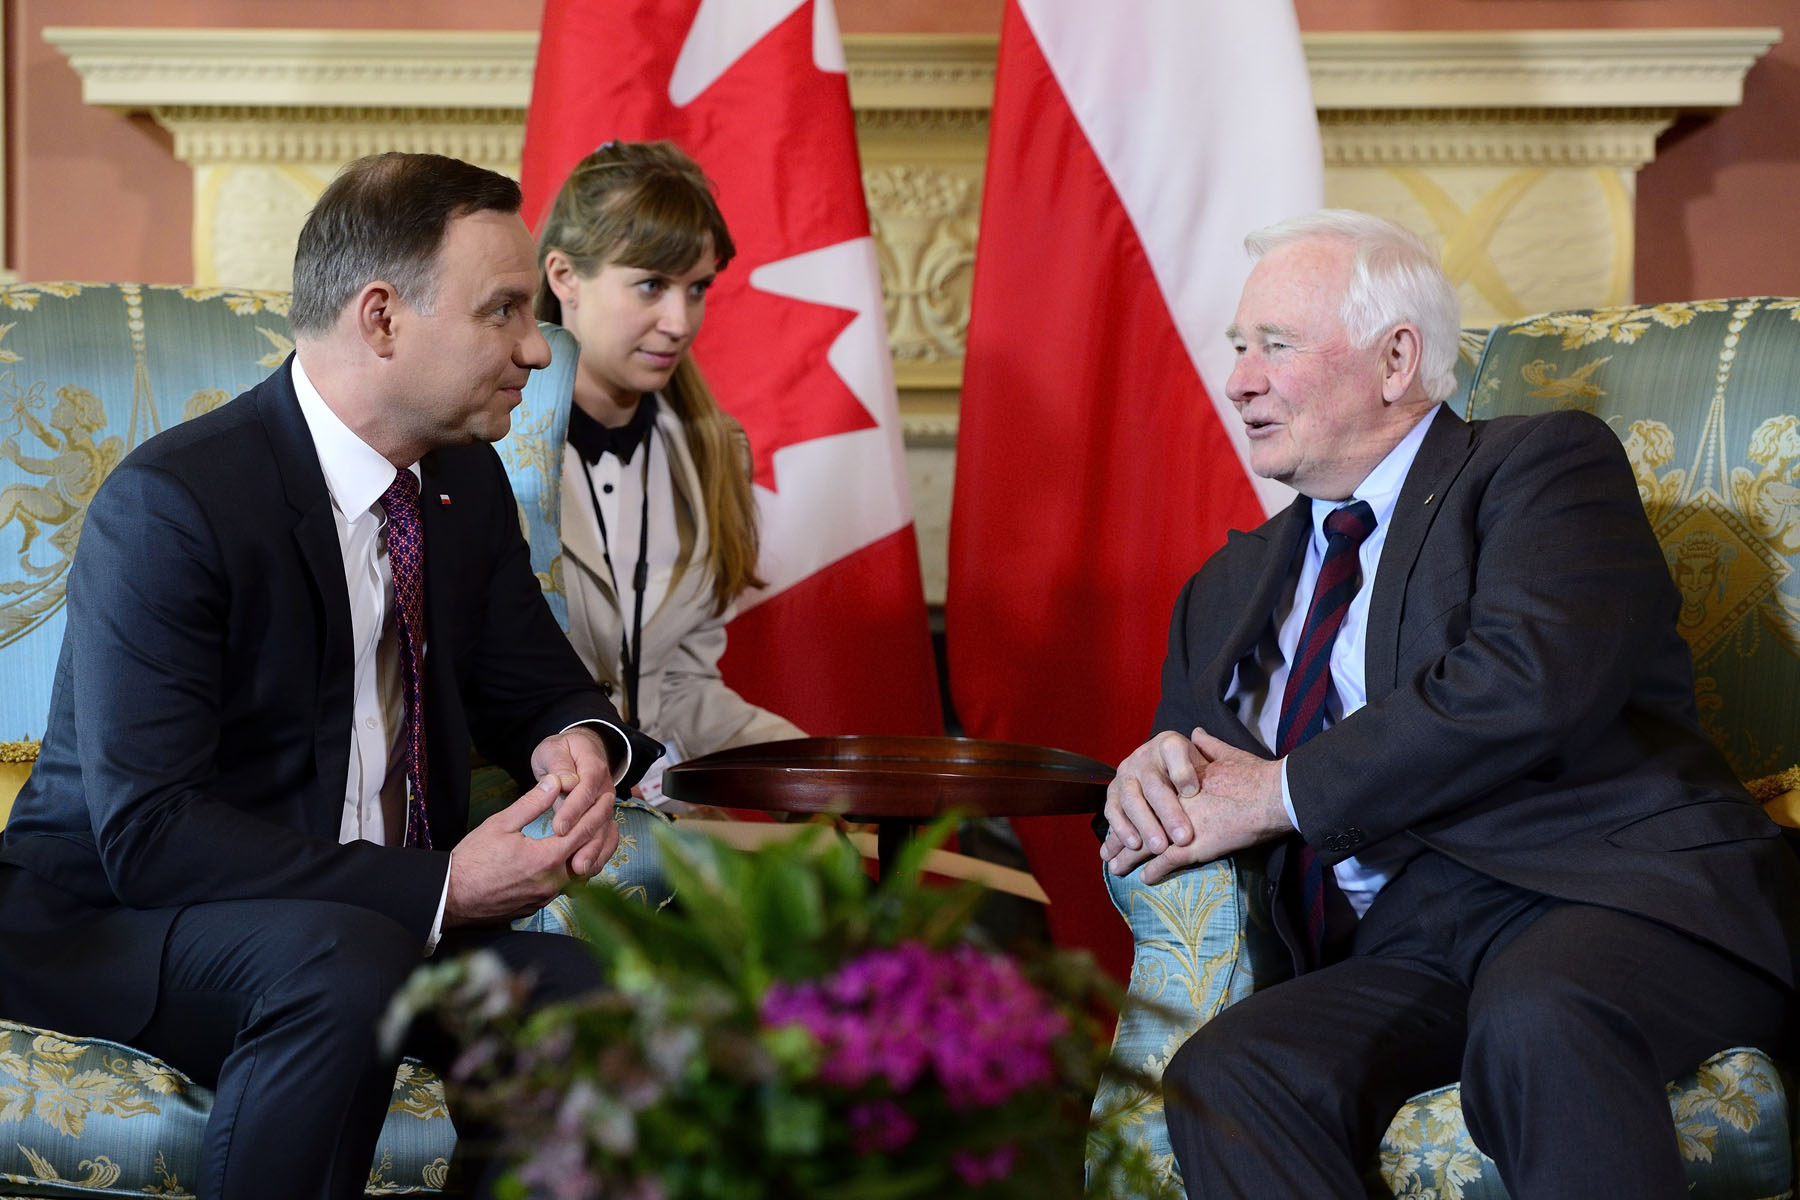 During the meeting, the President and the Governor General talked about bilateral relations and how Canada is quite privileged to be home to a vibrant community of close to one million Polish-Canadians.